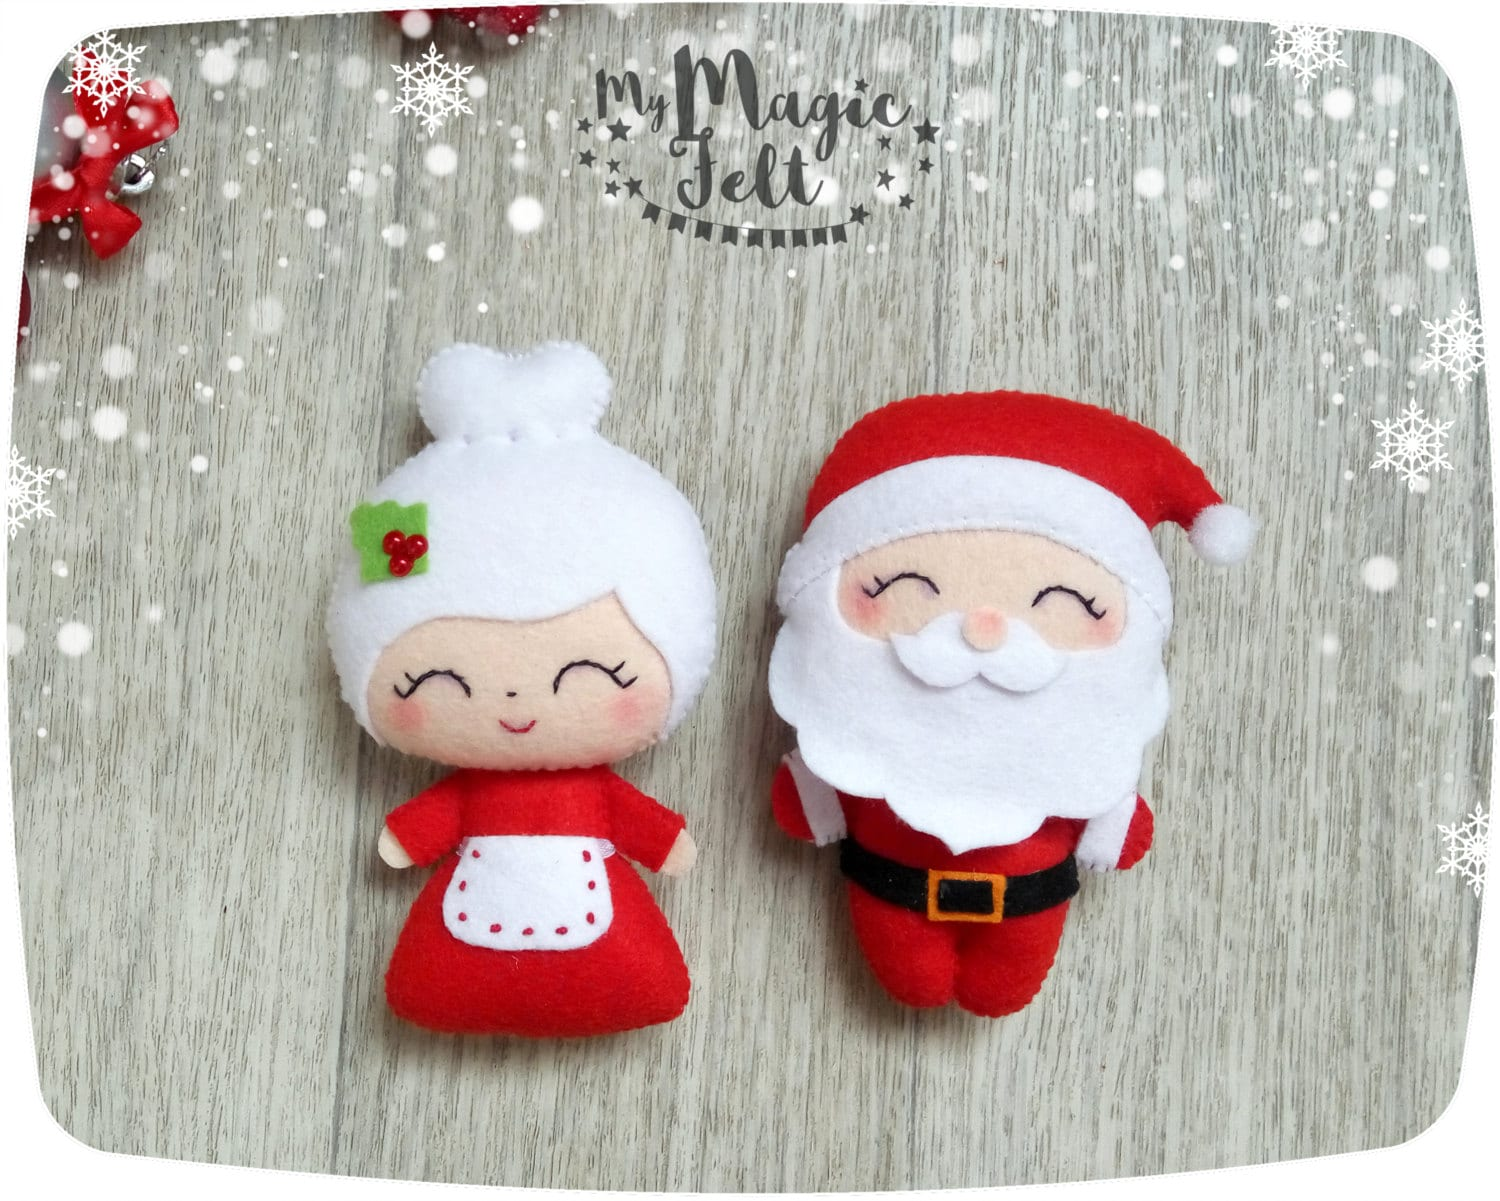 figurines cm bojesen claus a by p wooden decor christmas collection clara shop exclusive mrs kay decorations santa